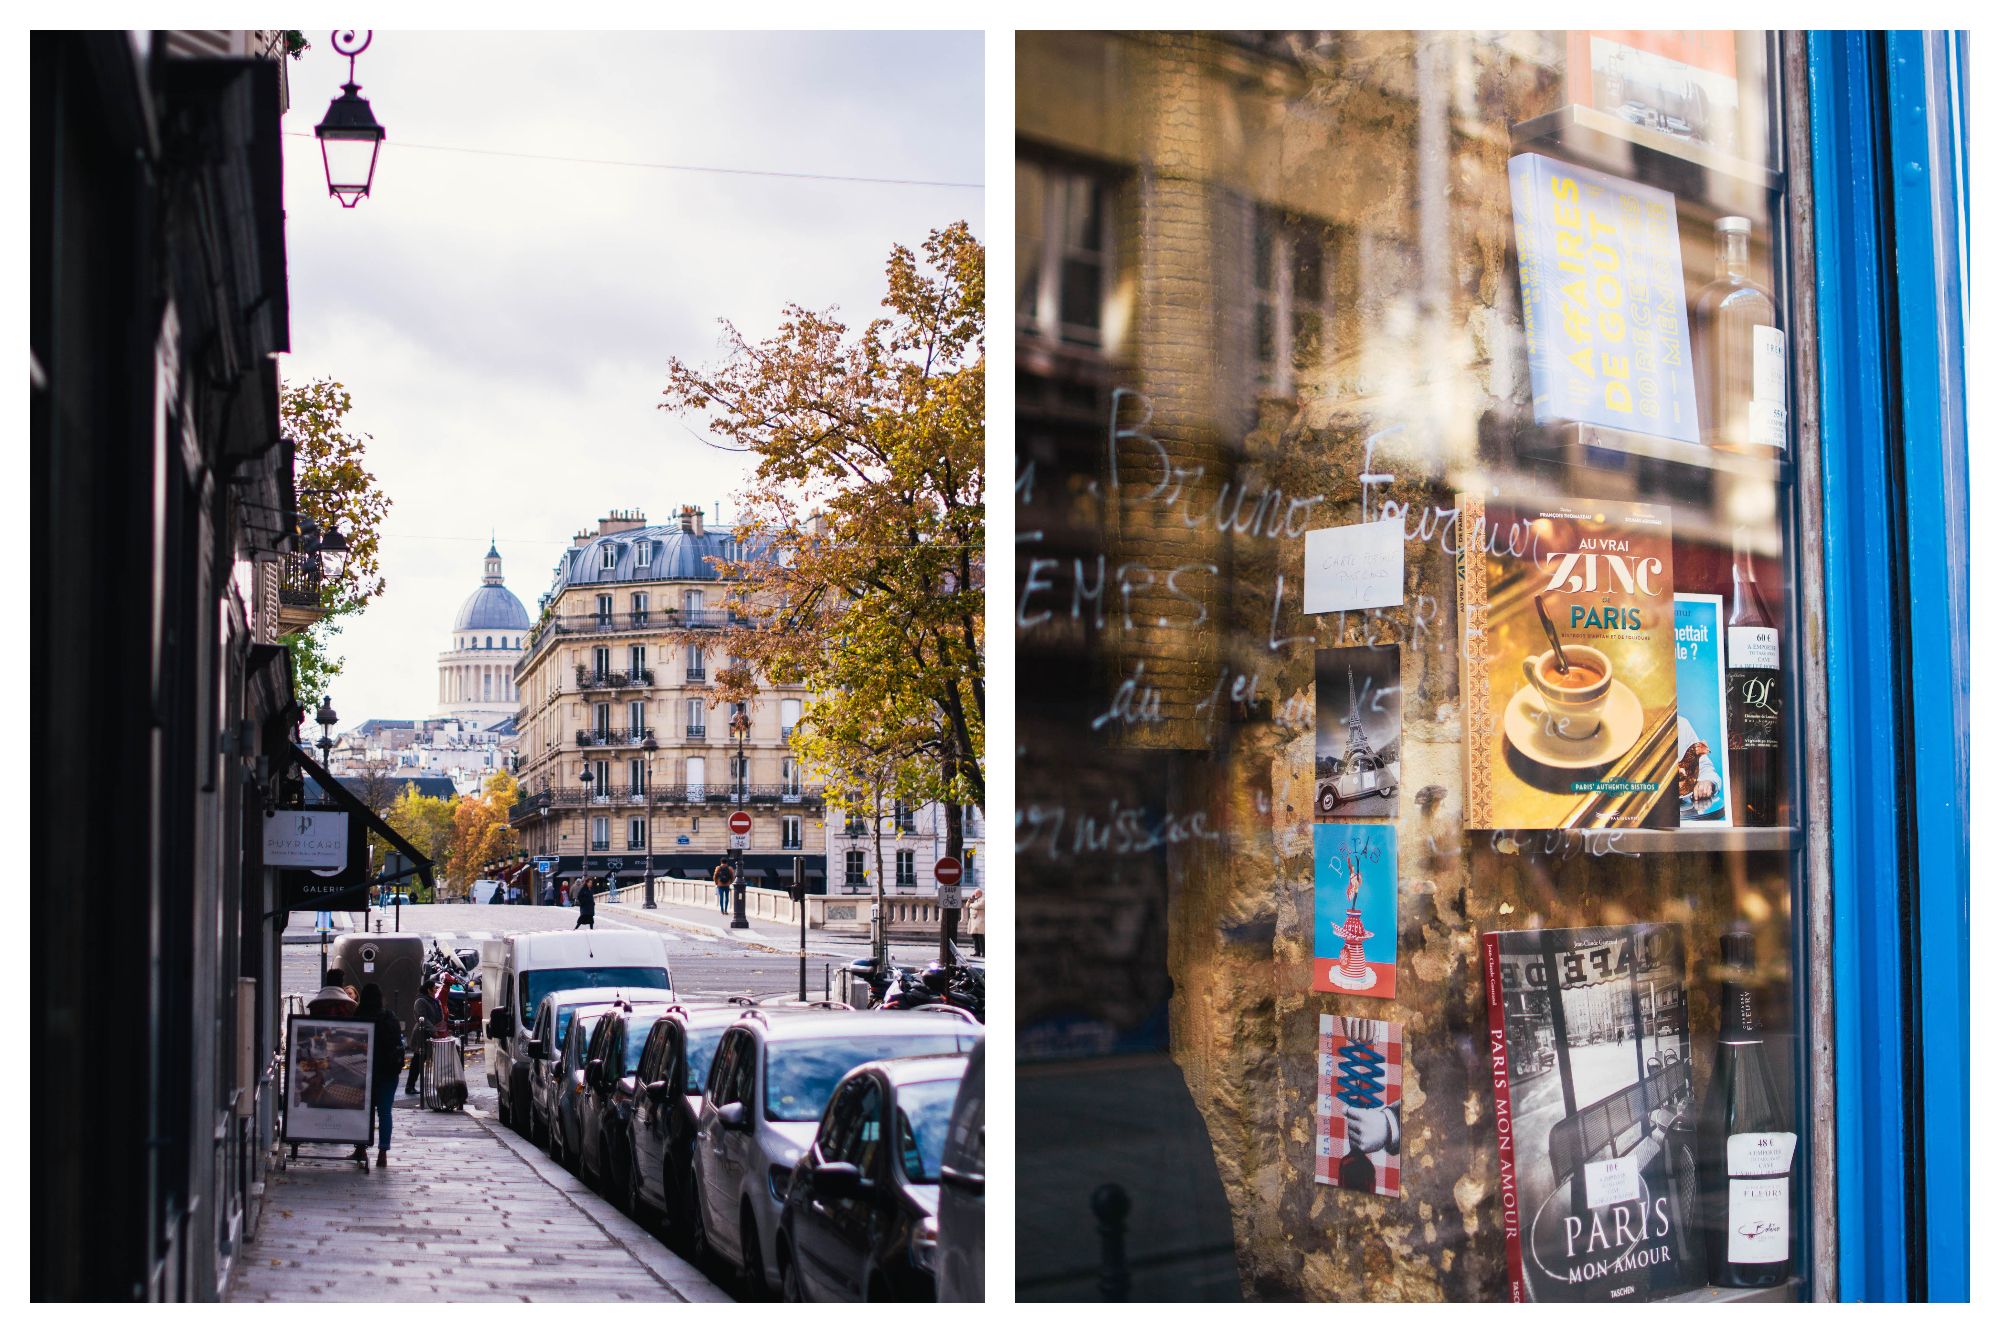 On left: an empty street on Île Saint Louis leads to a view of the Pantheon dome in Paris' Latin Quarter. On right: Books about Paris line a beautiful blue-trimmed store window.